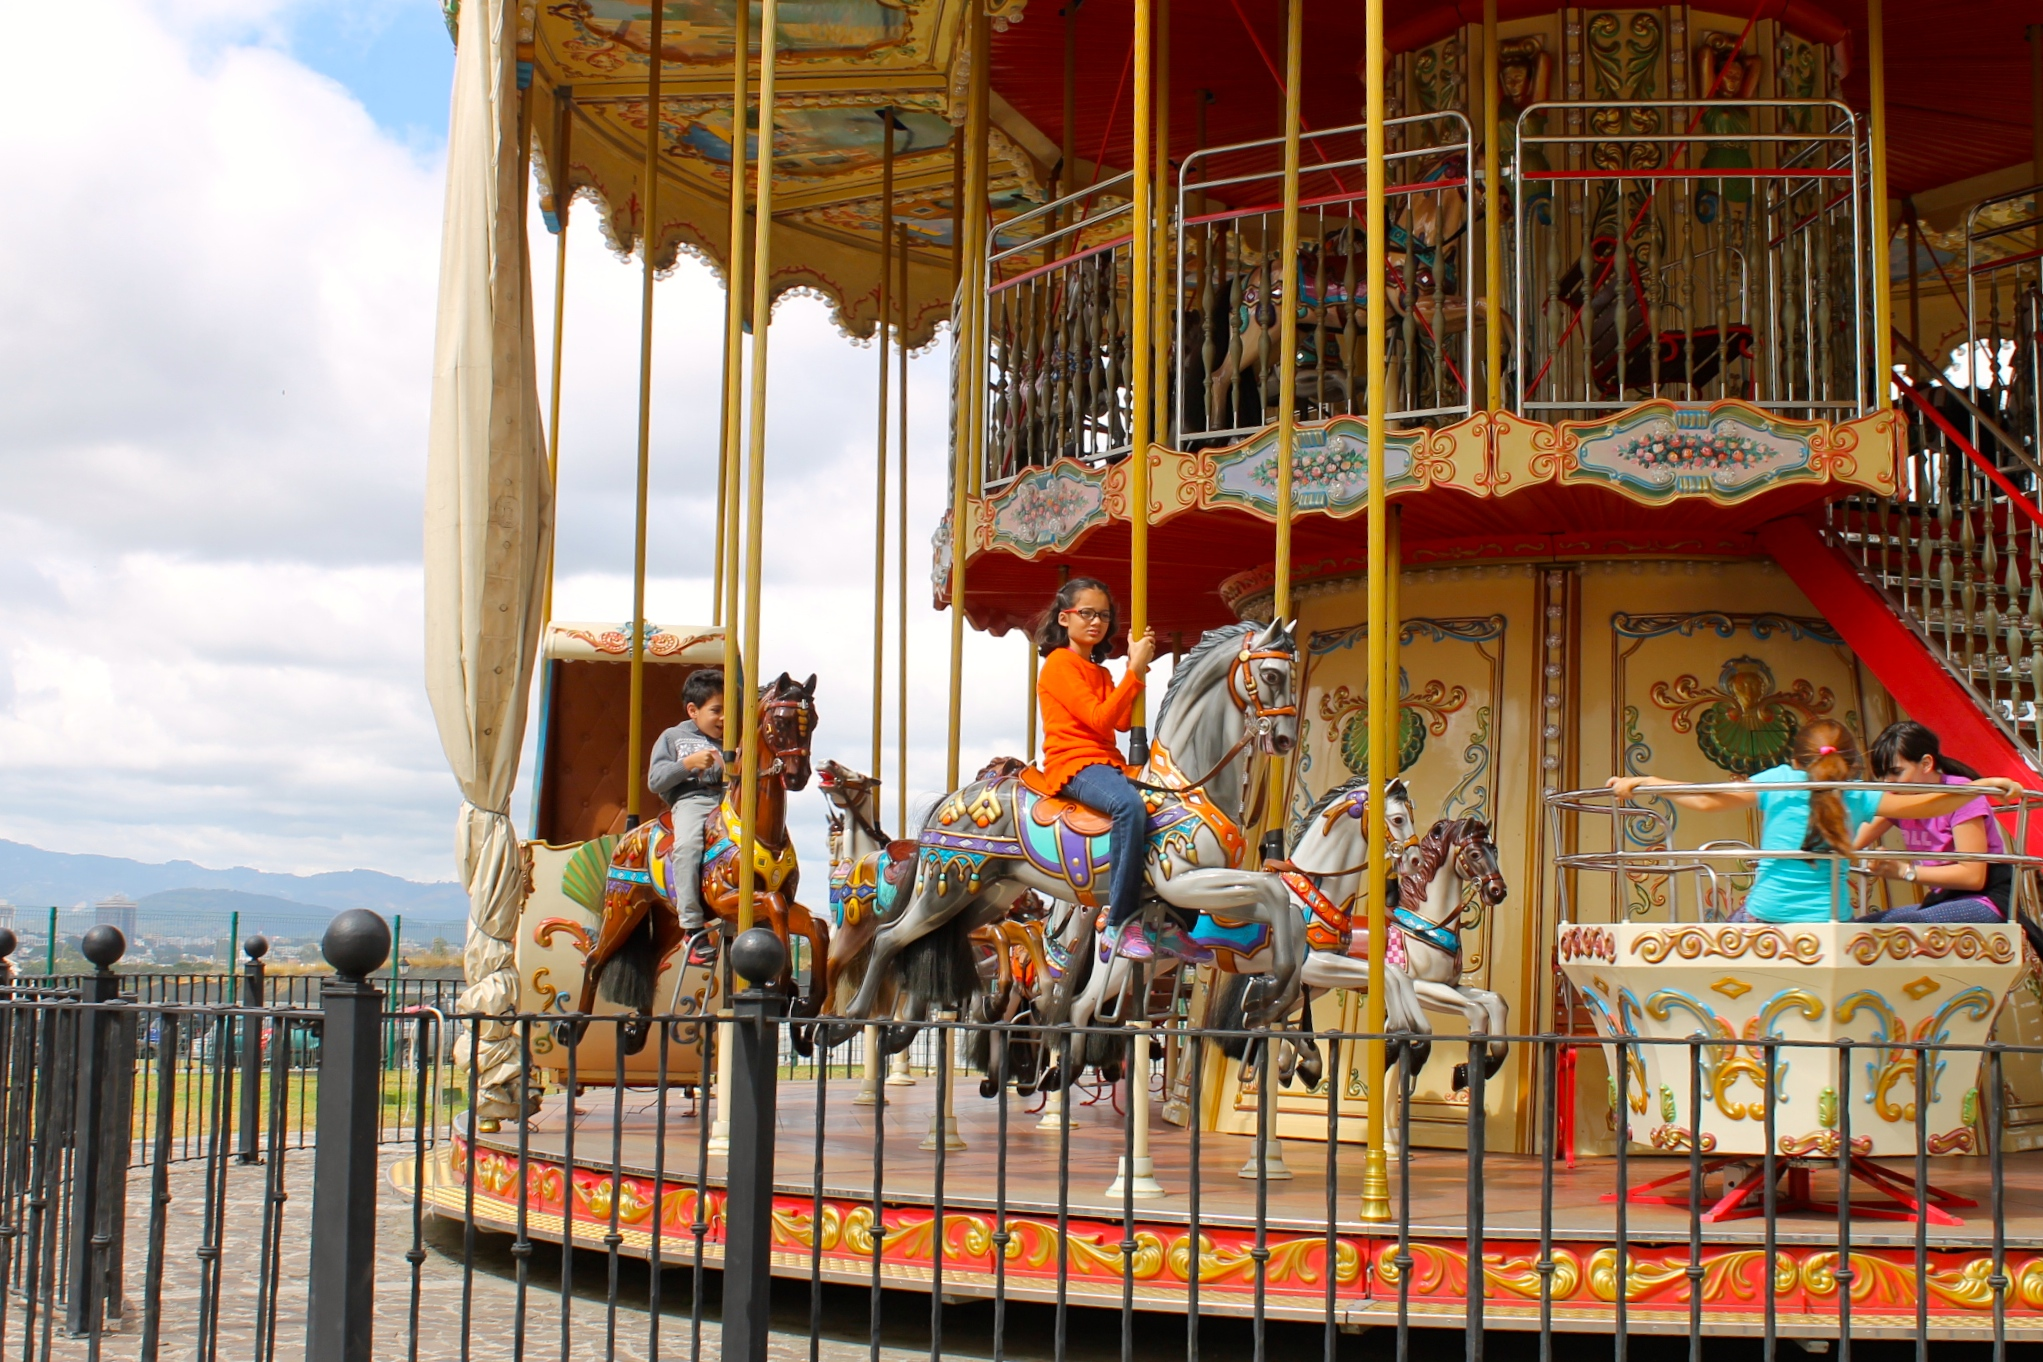 Things to do with kids in Guatemala: beautiful carrousel in Cayalá